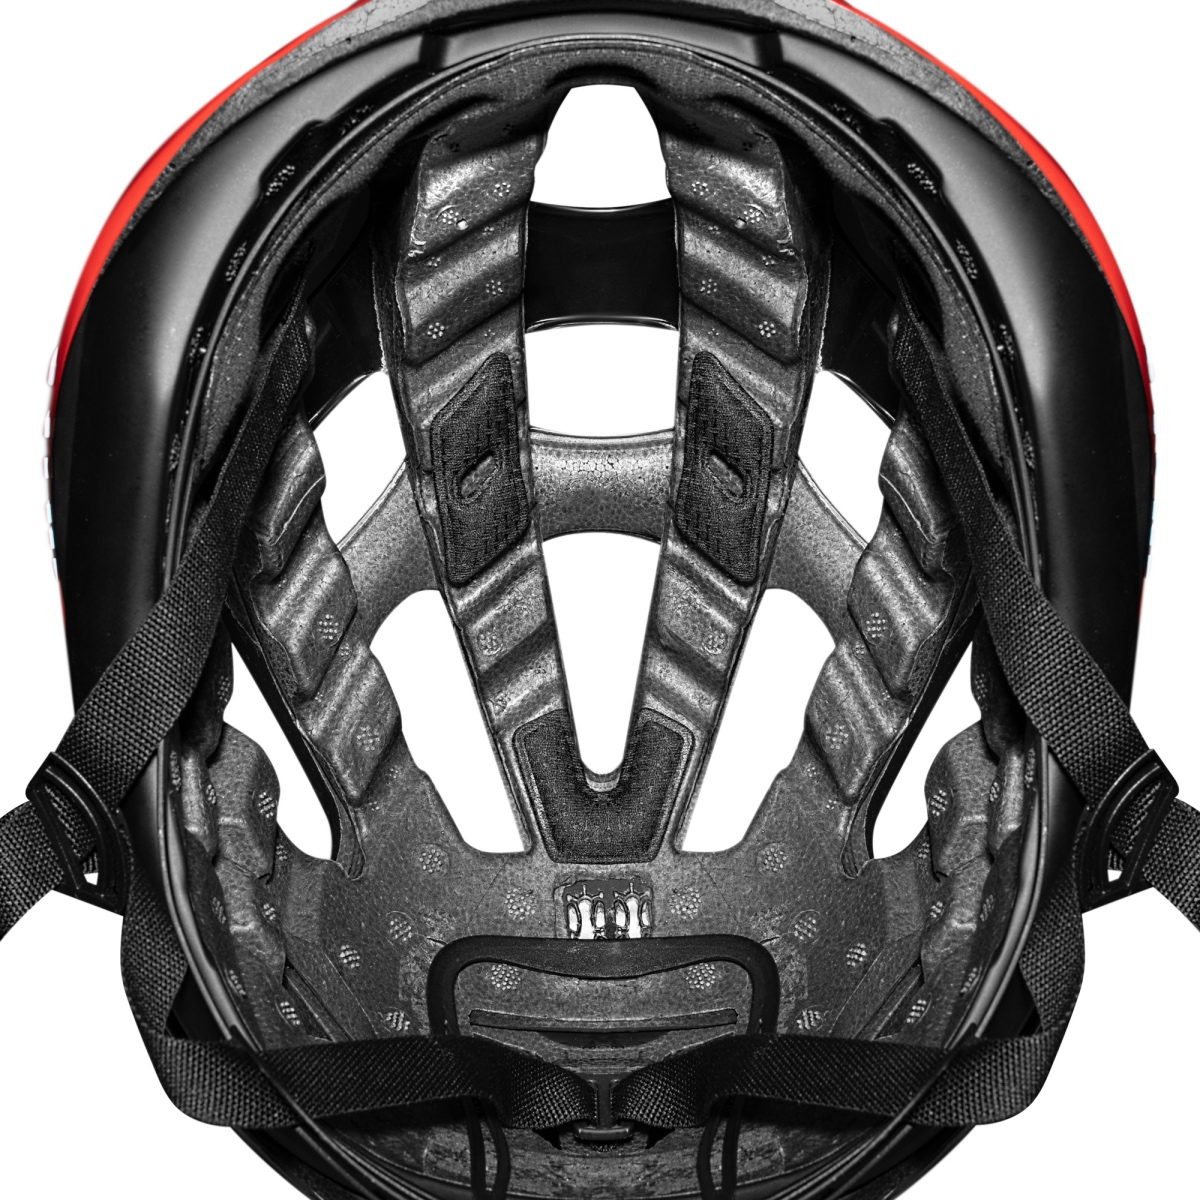 Giro's proprietary MIPS Spherical technology is embedded between the layers of EPS foam – instead of against the rider's head.